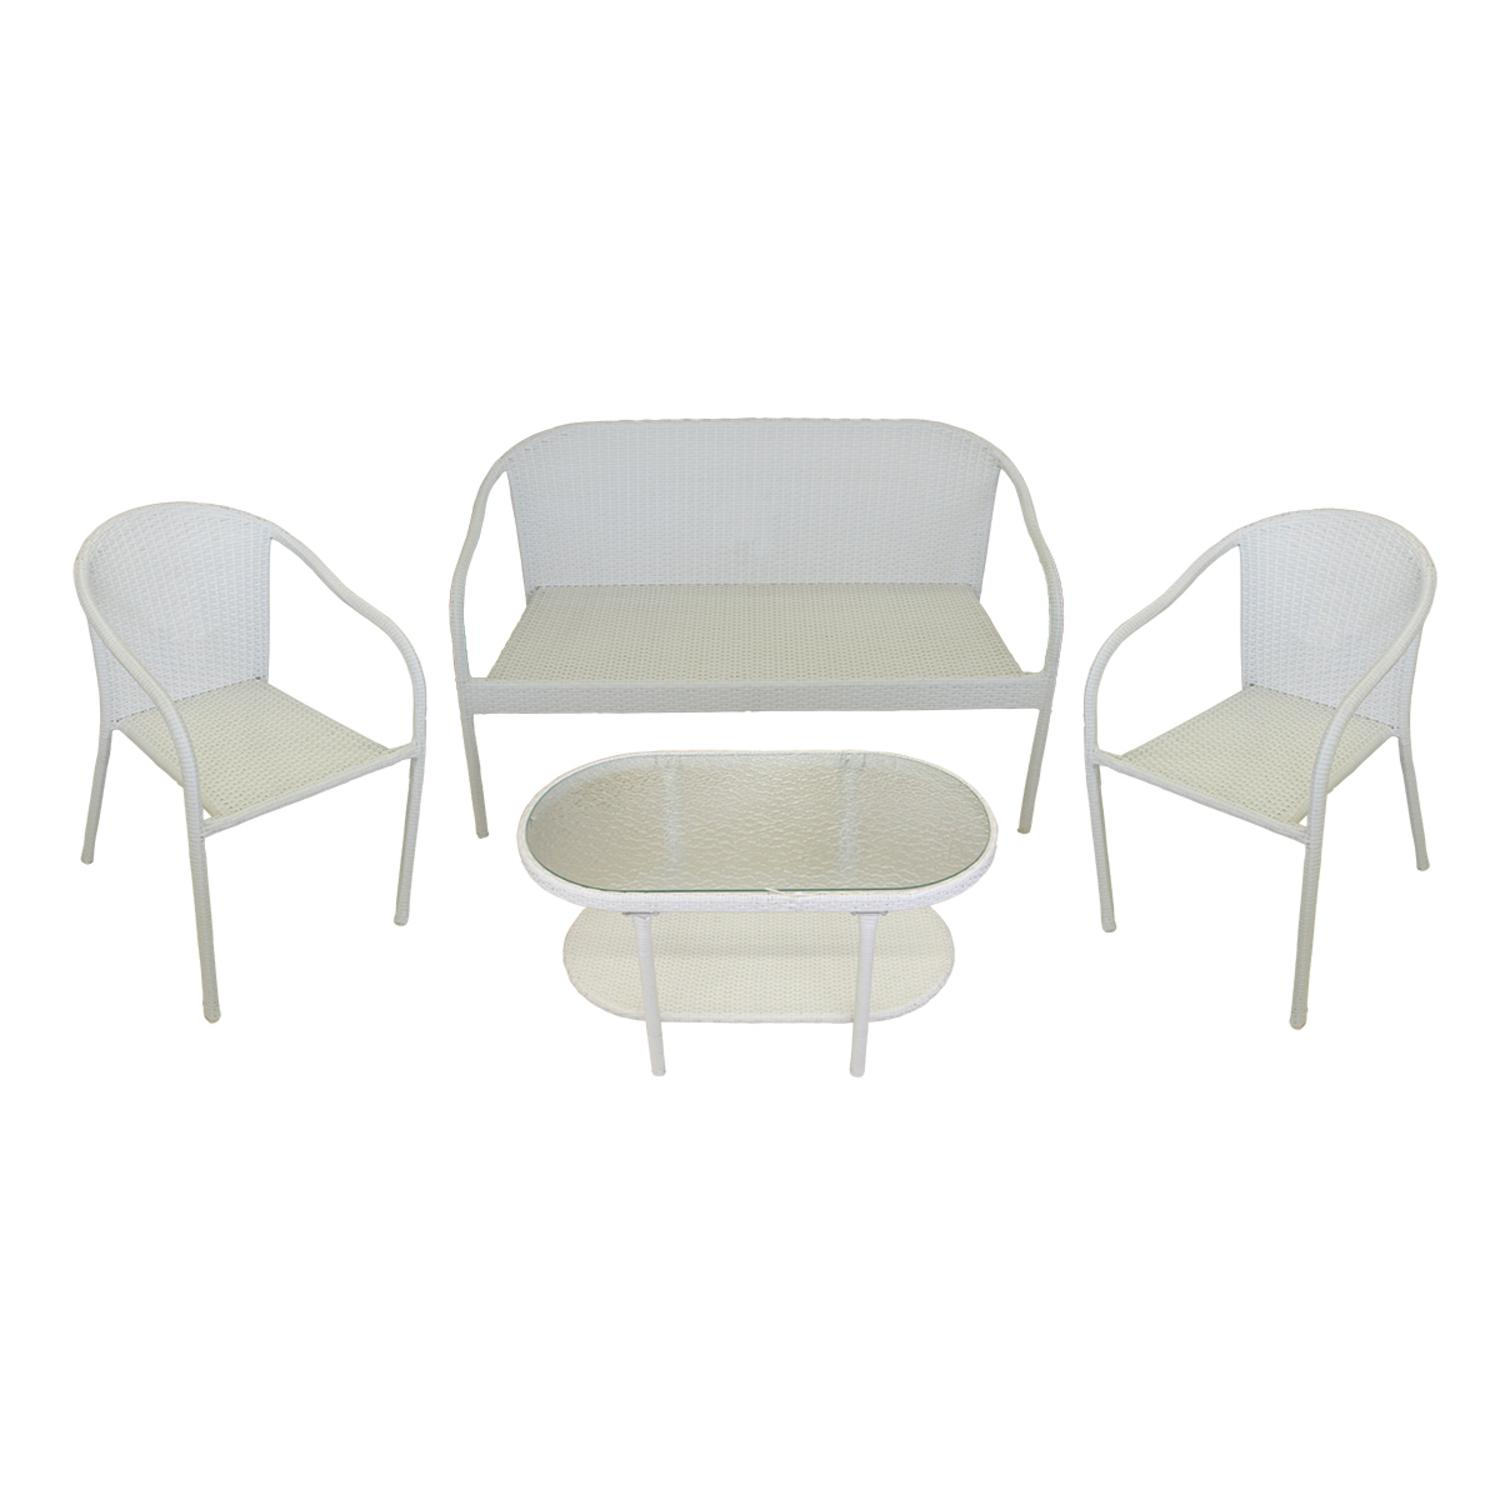 white resin wicker chairs child desk and chair set 4 piece patio furniture loveseat 2 glass top table walmart com